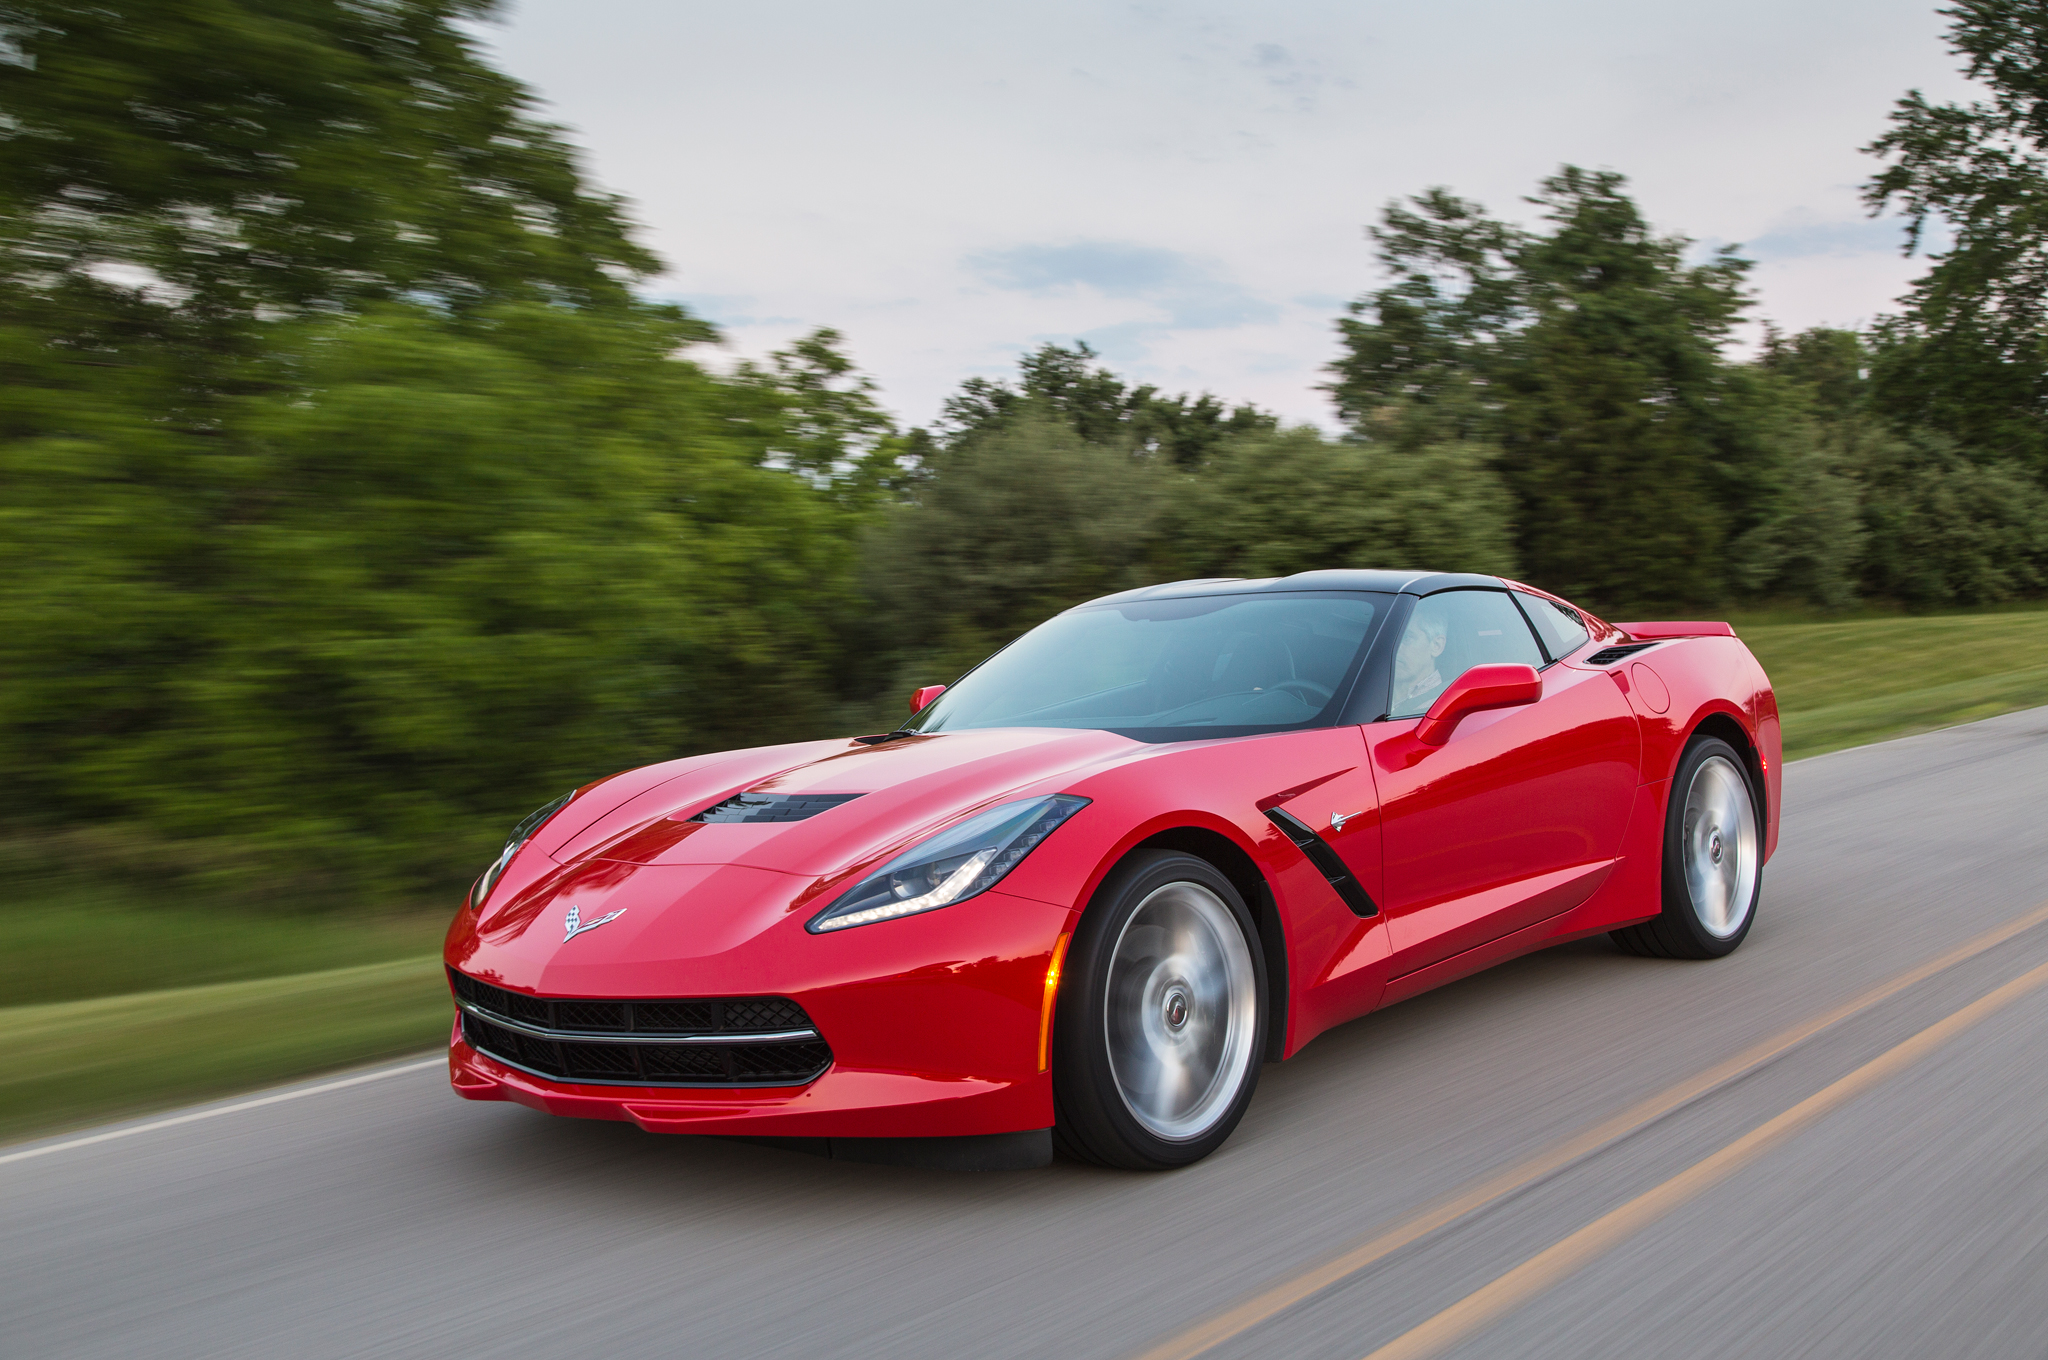 2014 Chevrolet Corvette Stingray Z51 Test Drive (Photo 6 of 7)